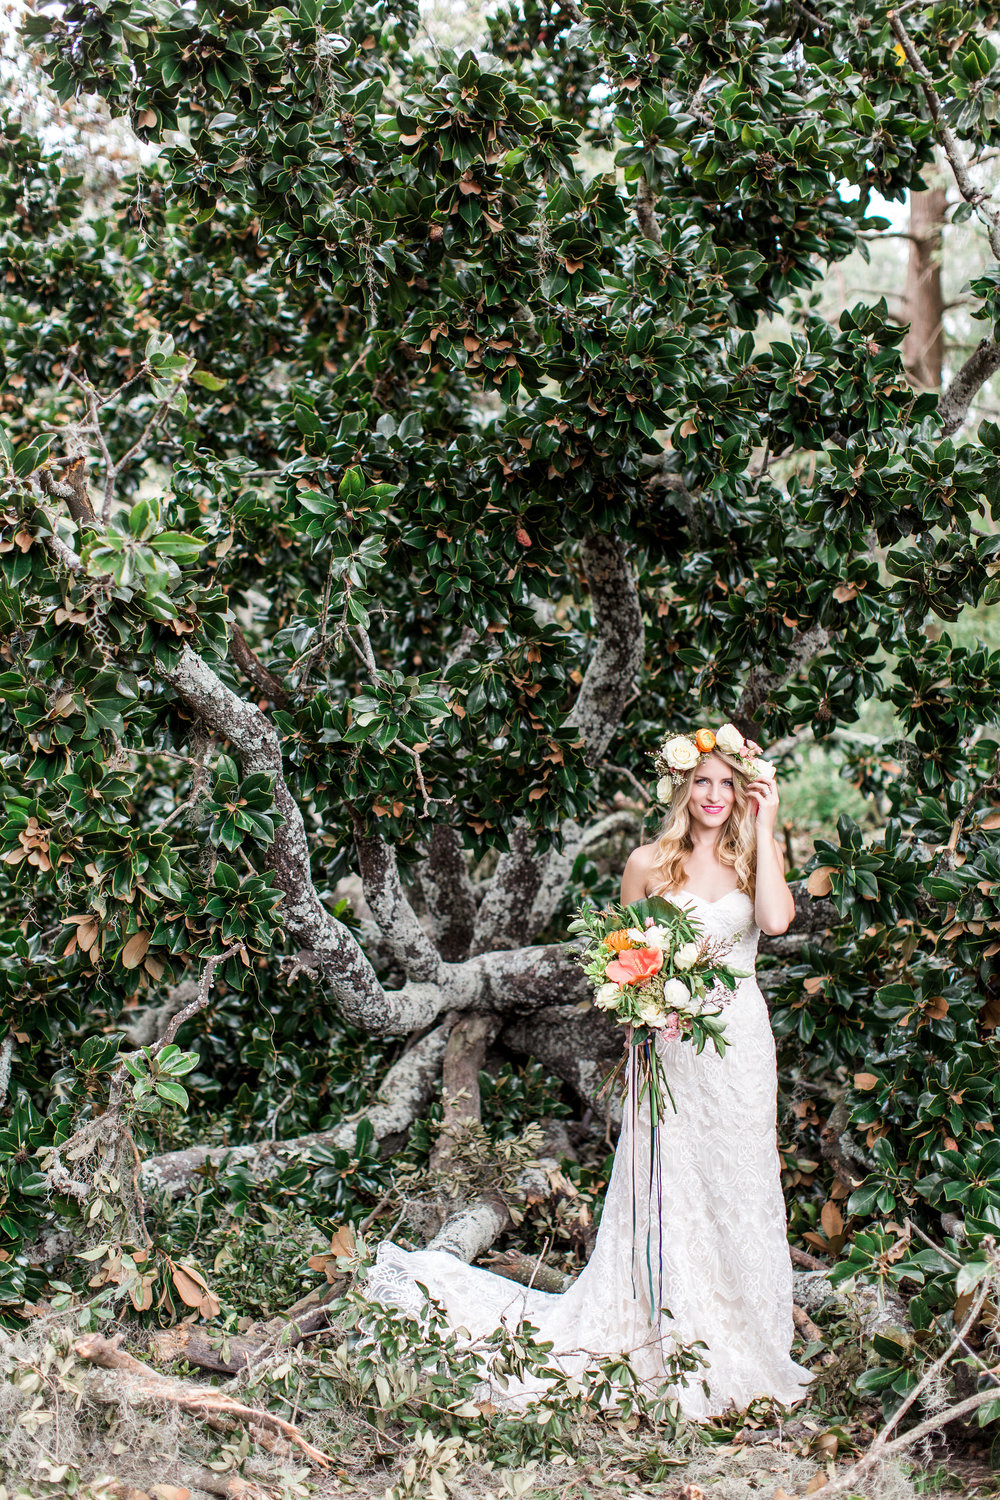 AptBPhoto_IvoryBeau_FallenTrees-fredericka-by-maggie-sottero-ivory-and-beau-savannah-bridal-boutique-savannah-wedding-dresses-savannah-wedding-florist.jpg